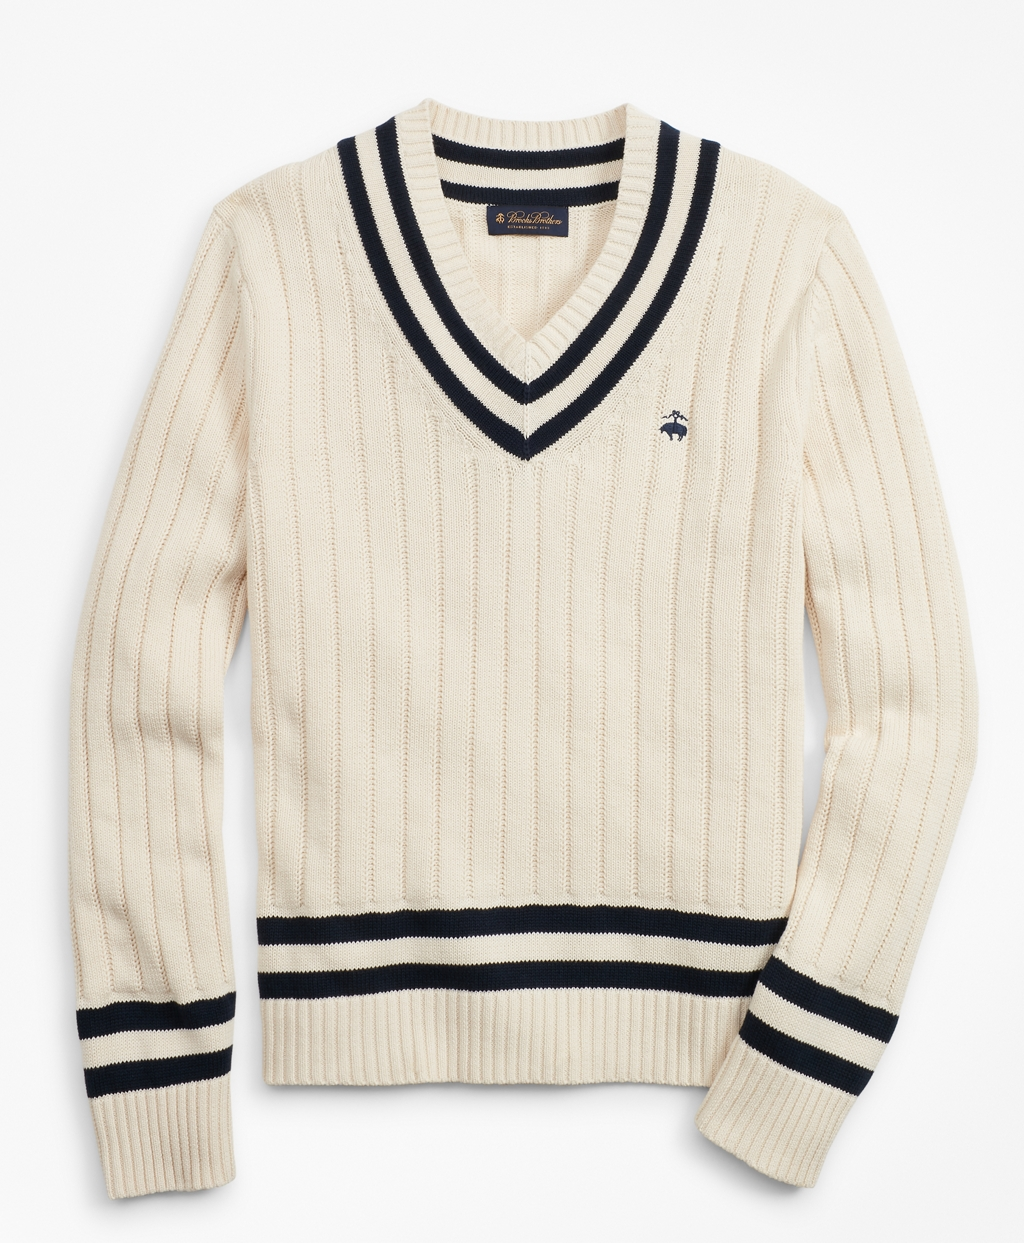 1920s Mens Sweaters, Pullovers, Cardigans Brooks Brothers Mens Tennis V-Neck Sweater $49.25 AT vintagedancer.com